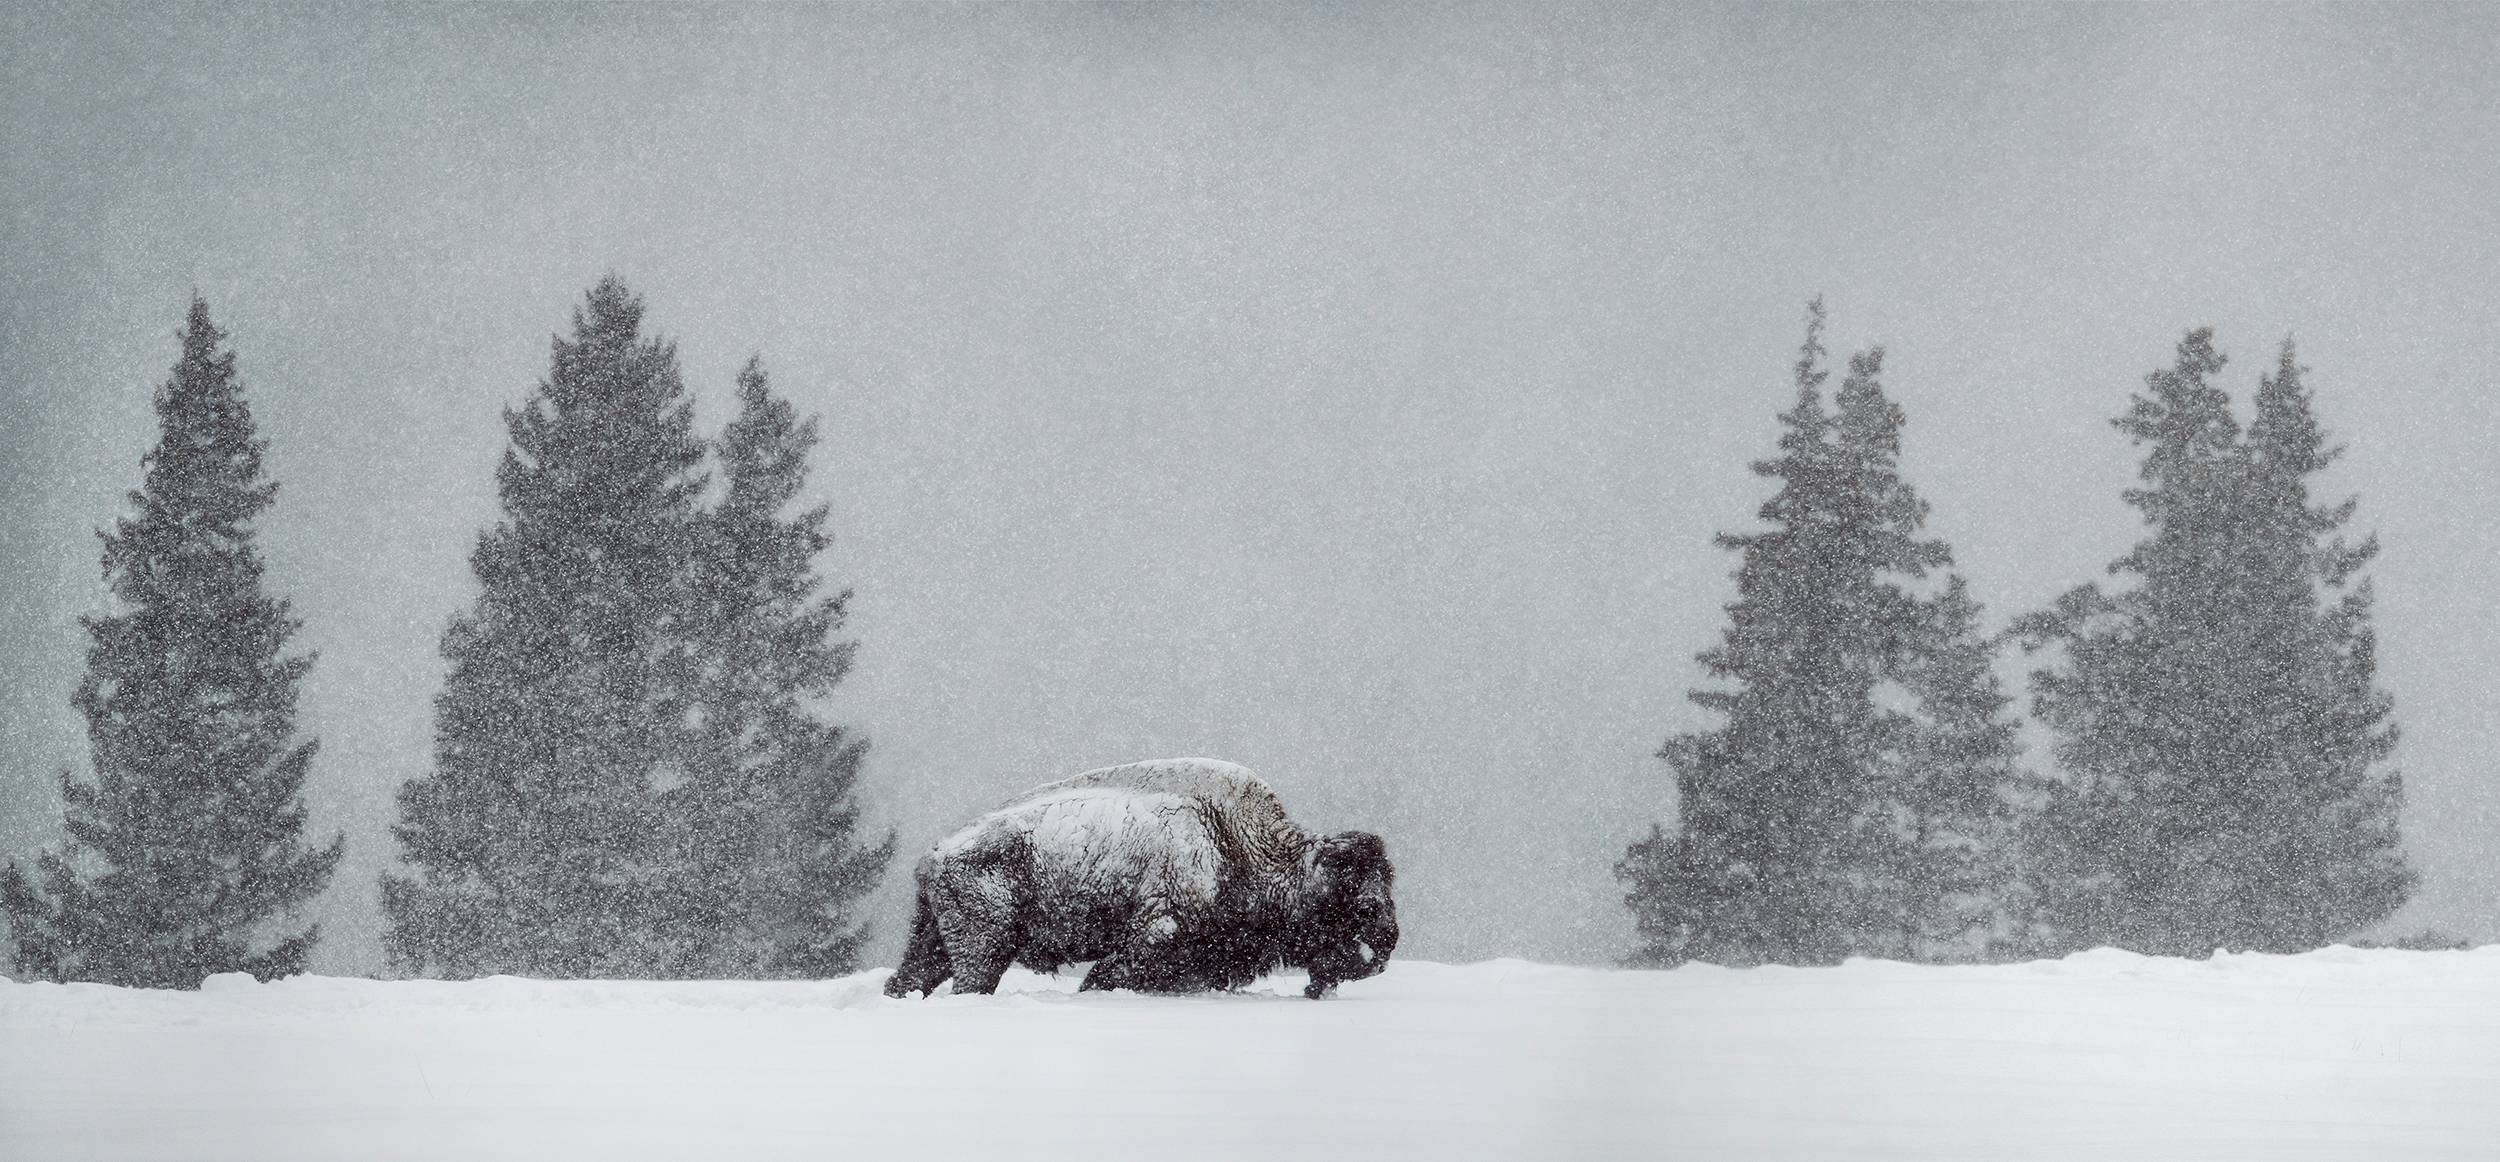 _DSC4304_Pano_Snow-Bison for website.jpg